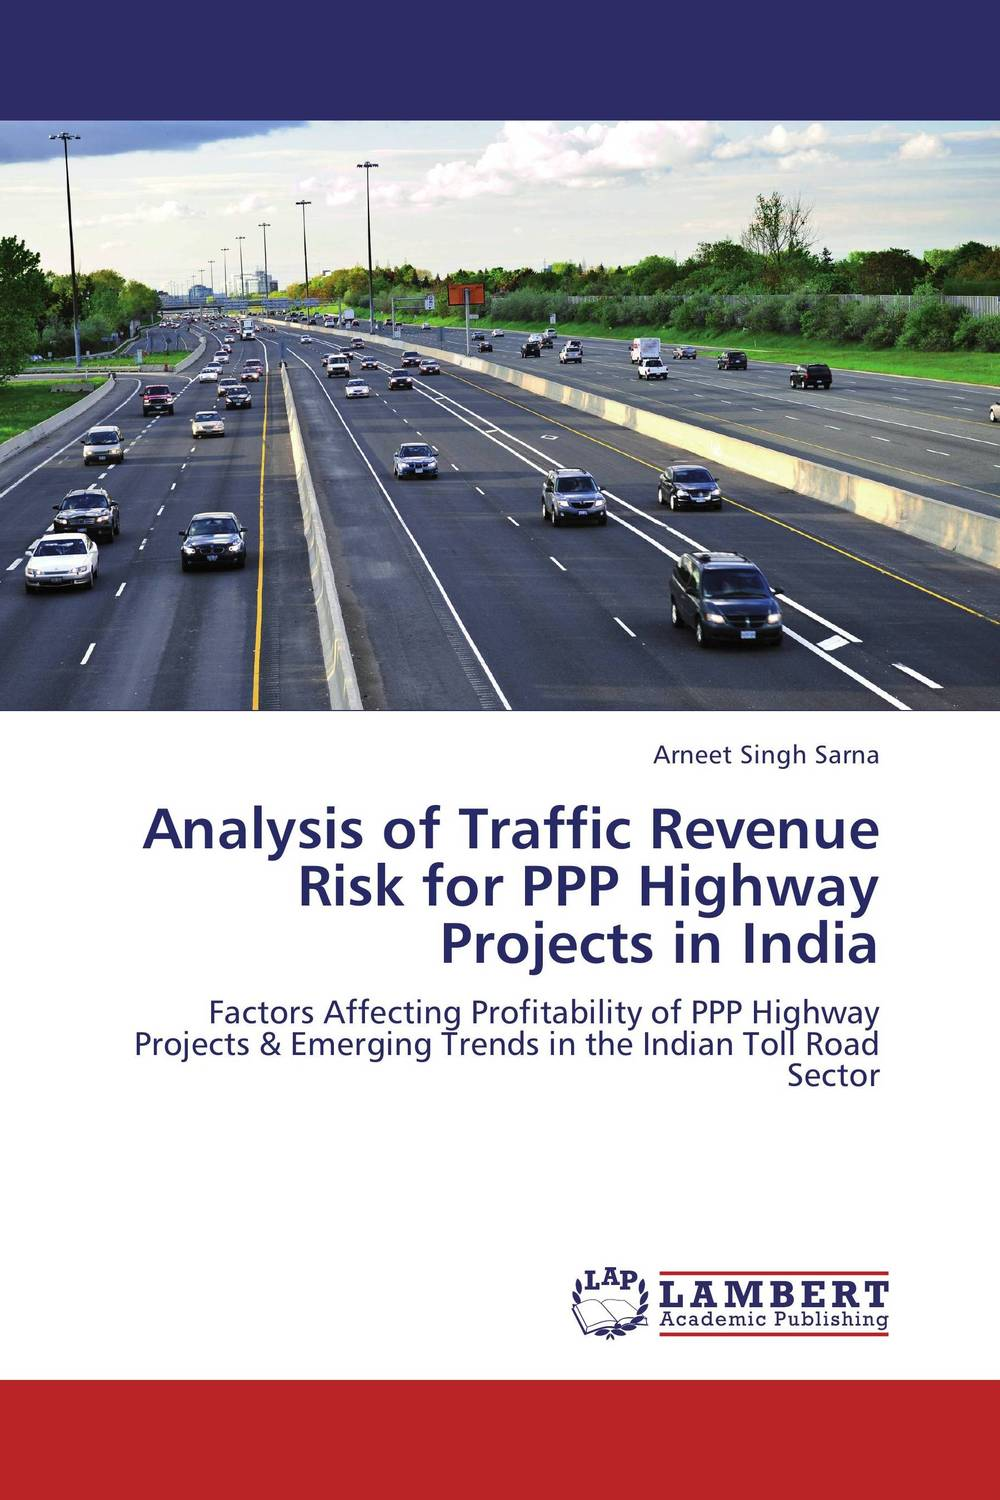 Analysis of Traffic Revenue Risk for PPP Highway Projects in India